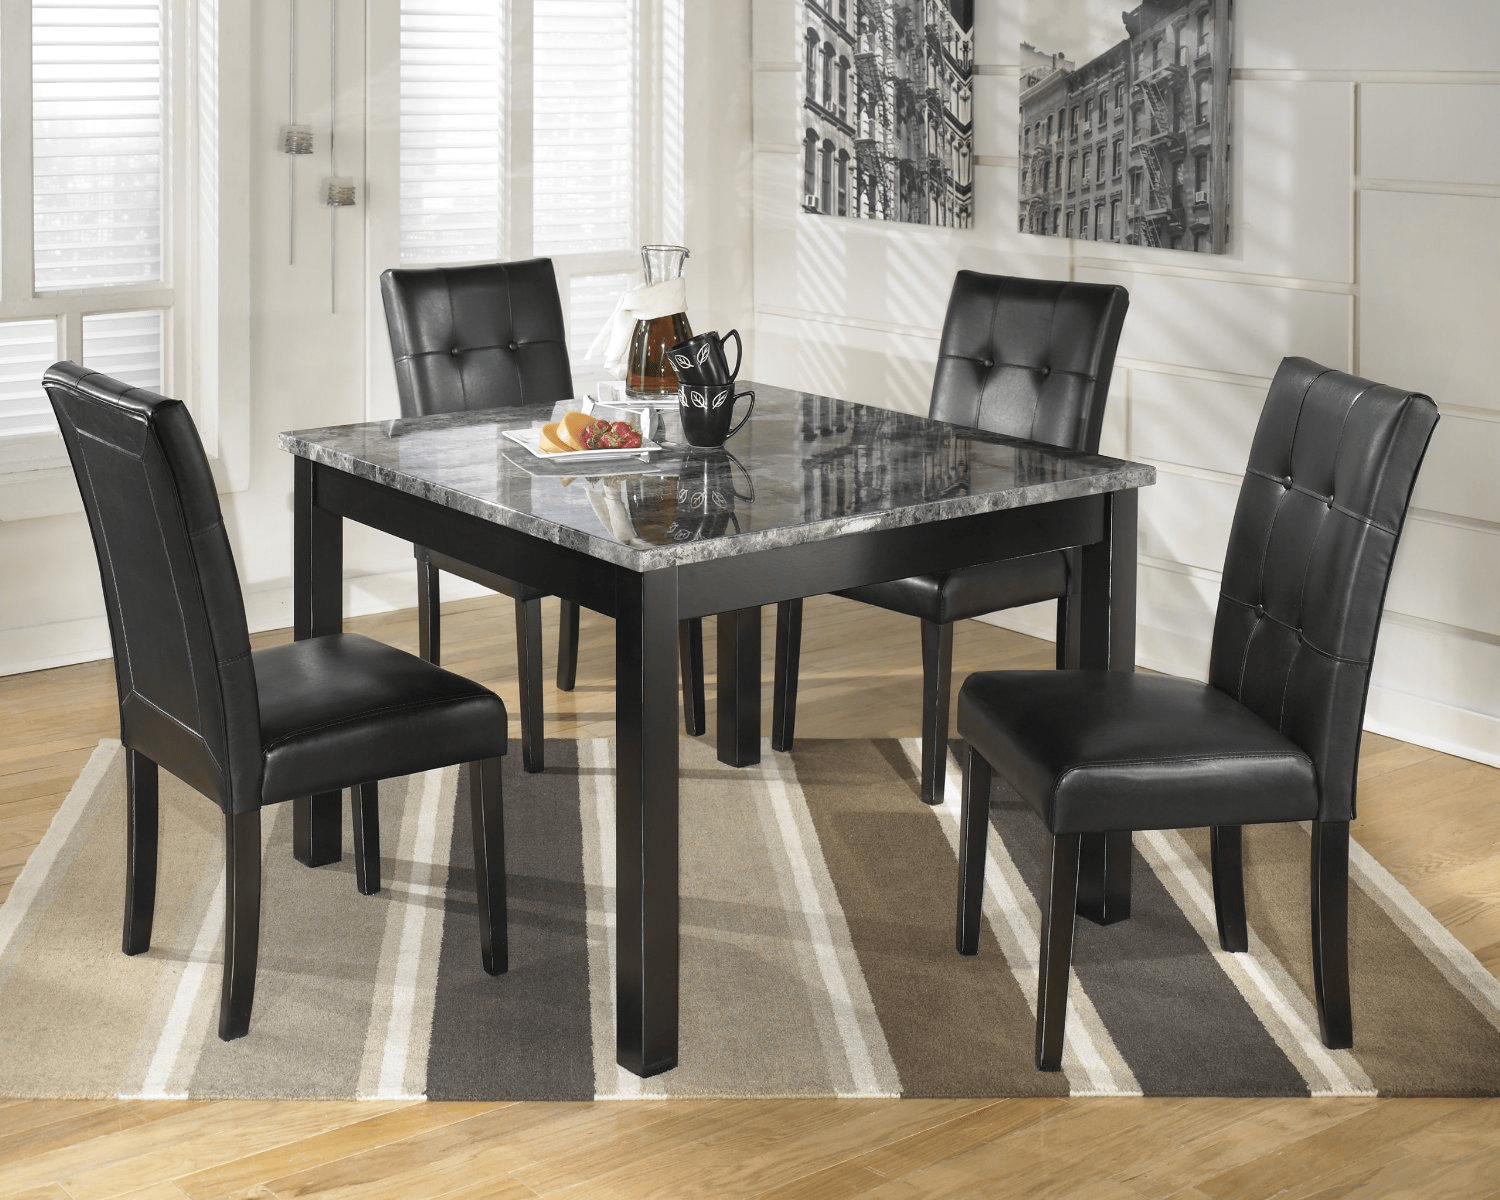 Beau Black Faux Marble Top Dining Table